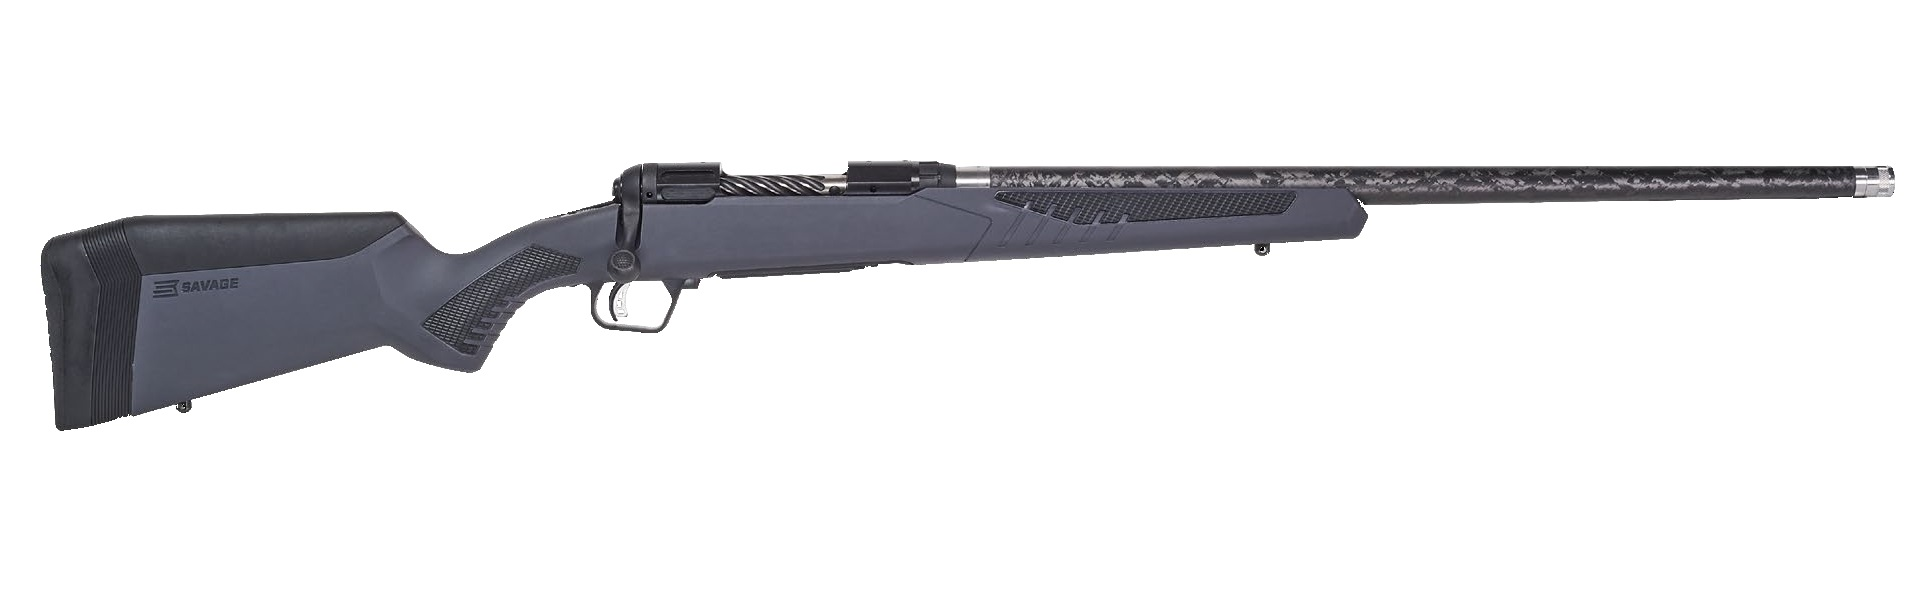 Savage Arms 110 Ultralite 300 WSM